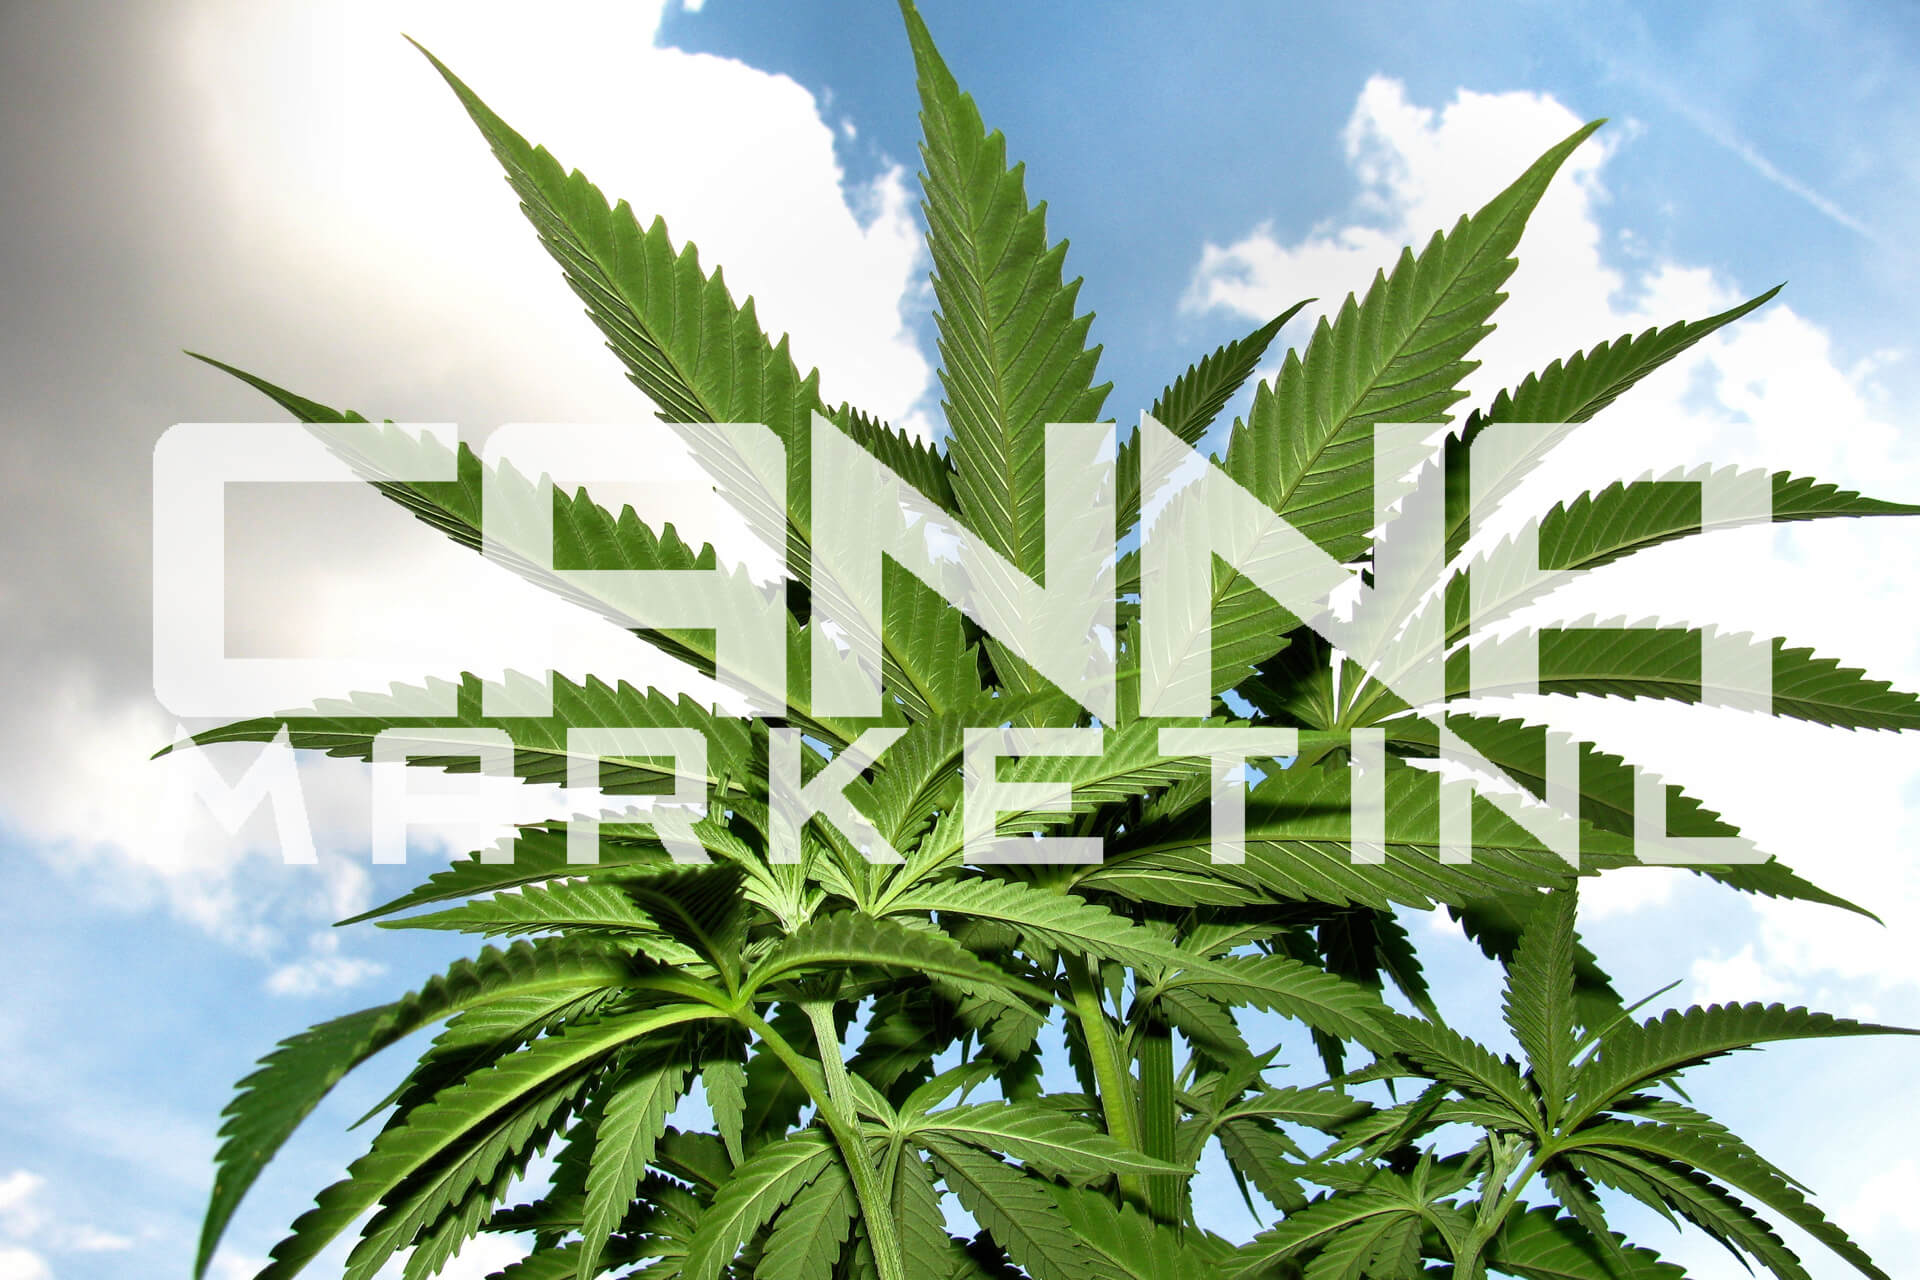 CANNA MARKETING | Online Marketing e Comunicazione Digitale per il Mondo Cannabis e l'Industria della Canapa e della Marihuana Legale Light